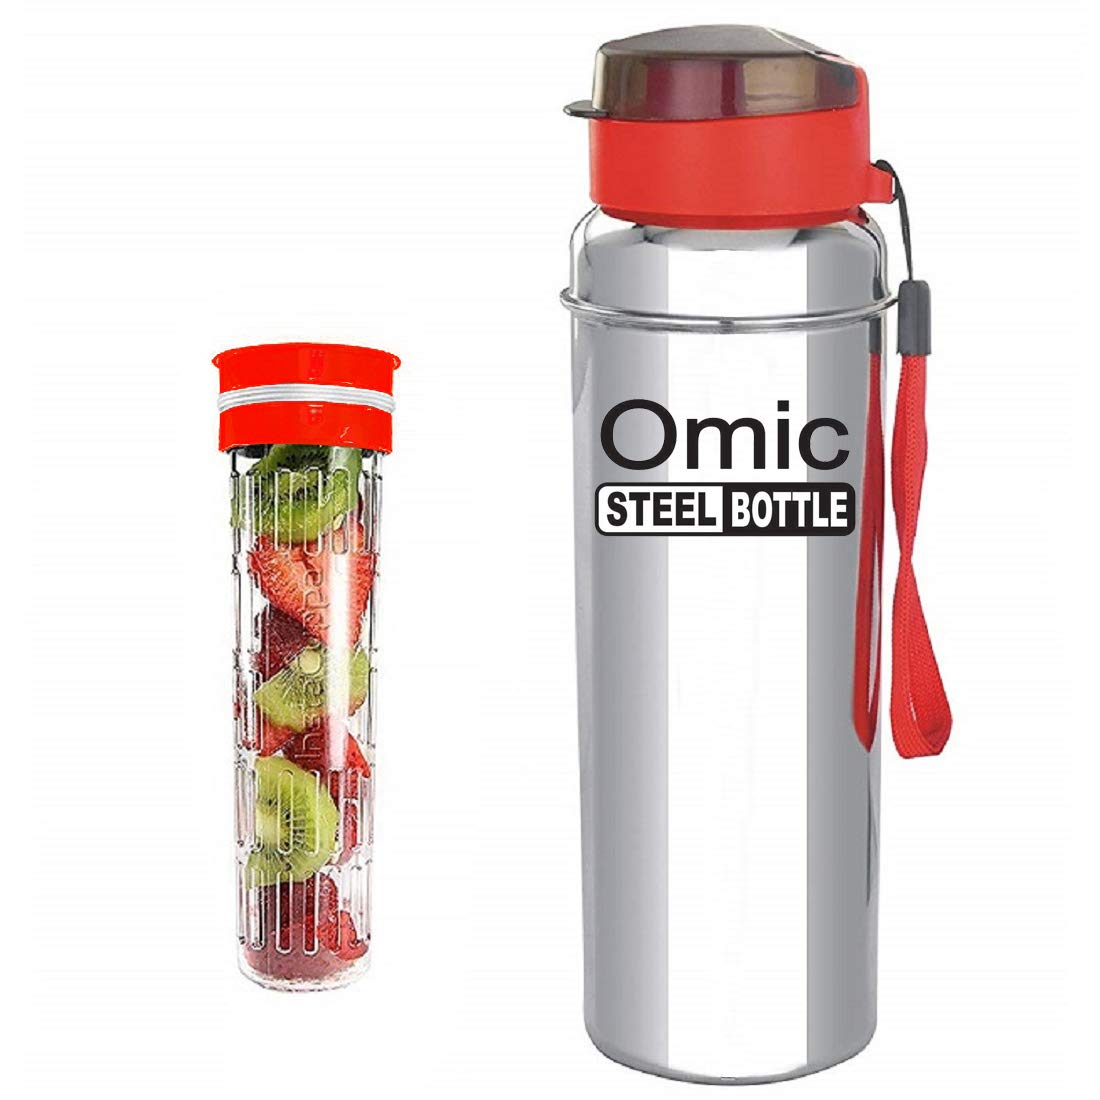 Omic Stainless Steel Fruit Infuser Water Bottle, Stainless Steel Bottle with Infusion Unit, (Color May Be Vary) (650)